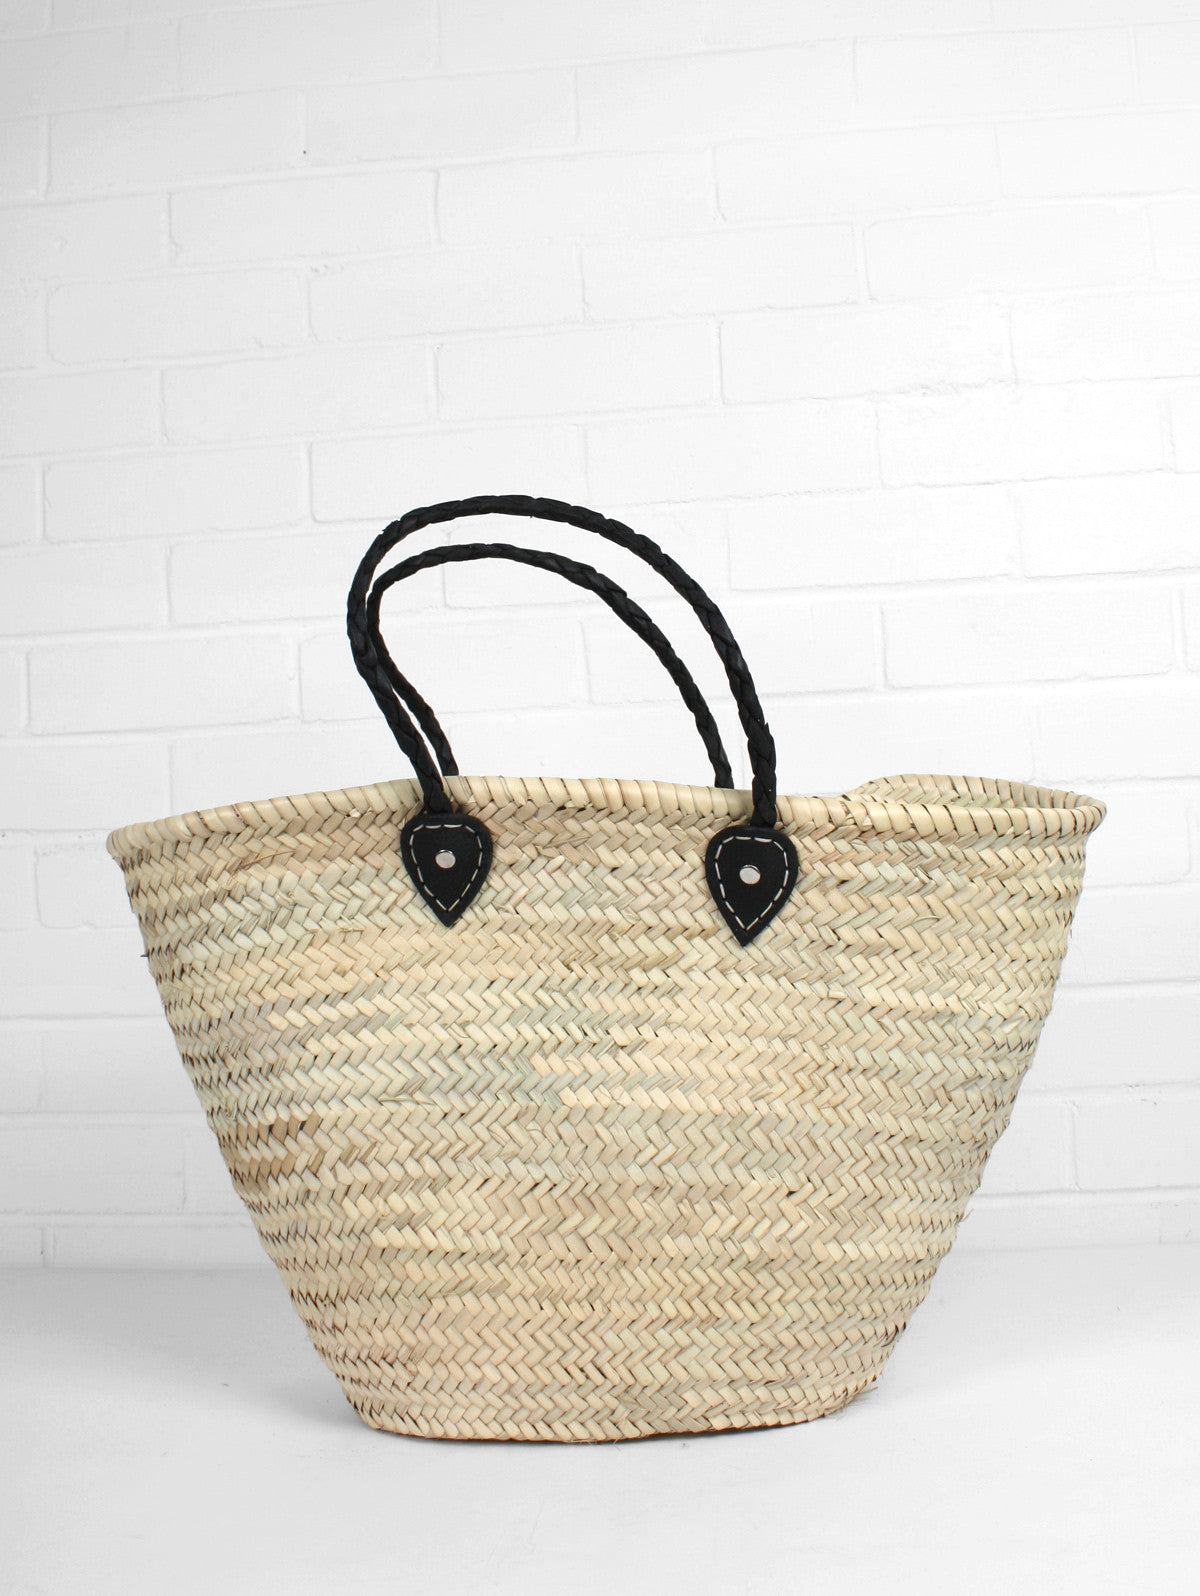 French Shopping Basket, Black